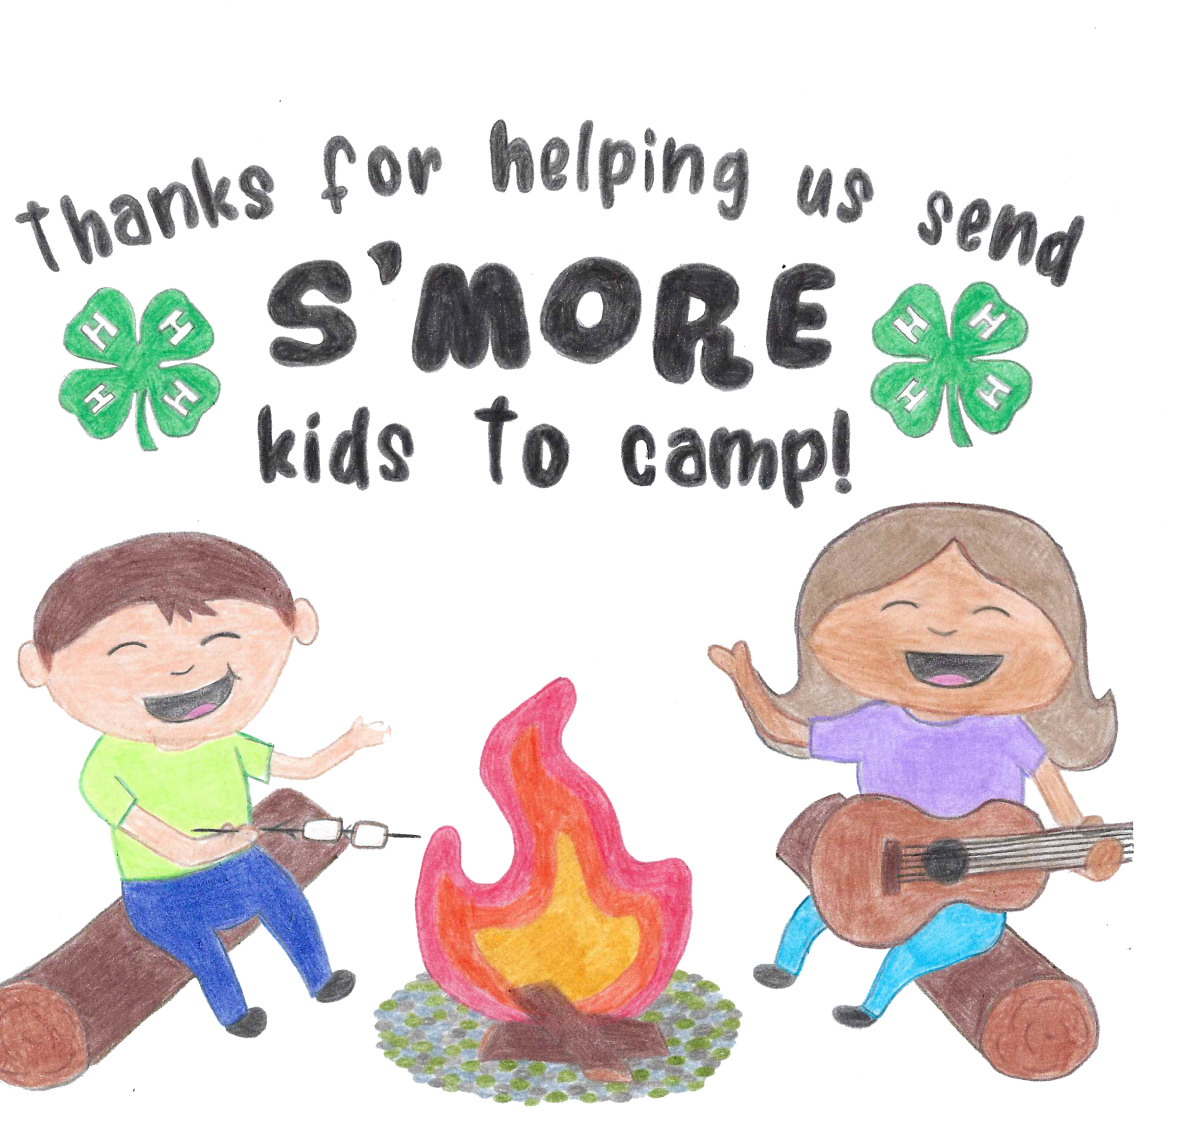 """Text: """"Thanks for helping us send s'more kids to camp!"""" with a 4-H clover on the left and right of the text. The drawing also has a boy sitting on a log, roasting a marshmallow and a girl sitting on a log playing guitar."""